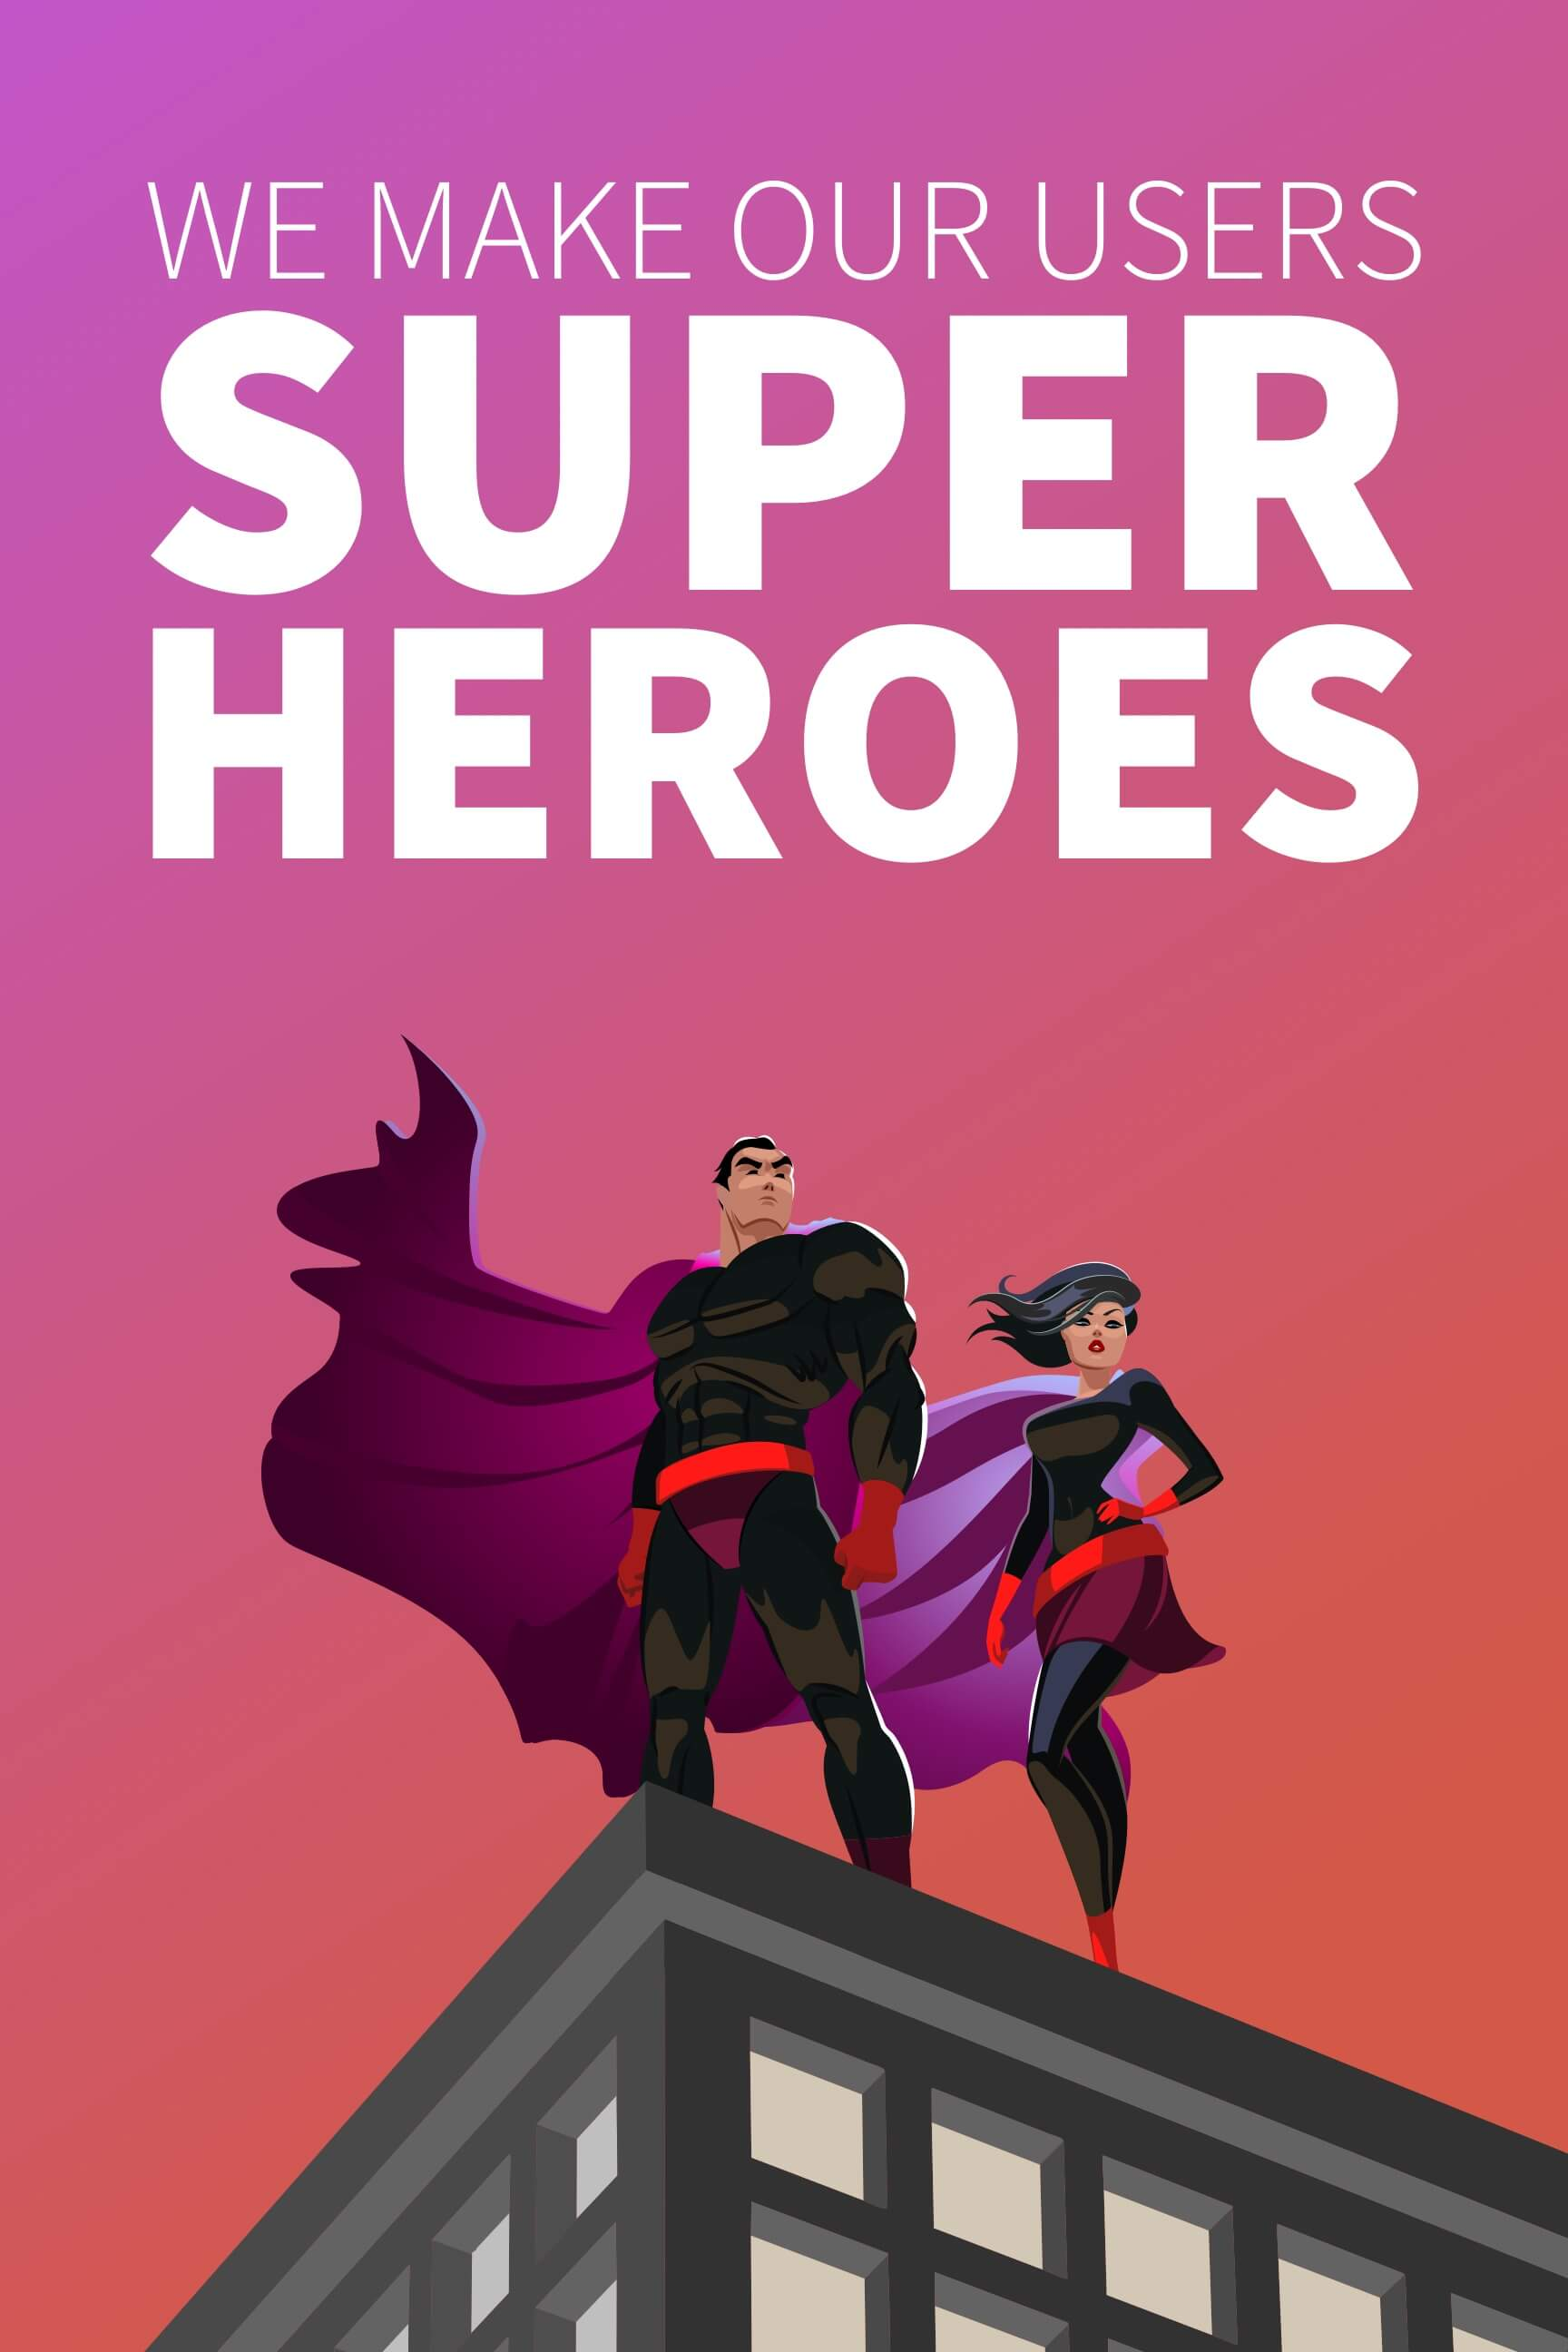 We make our users super heroes